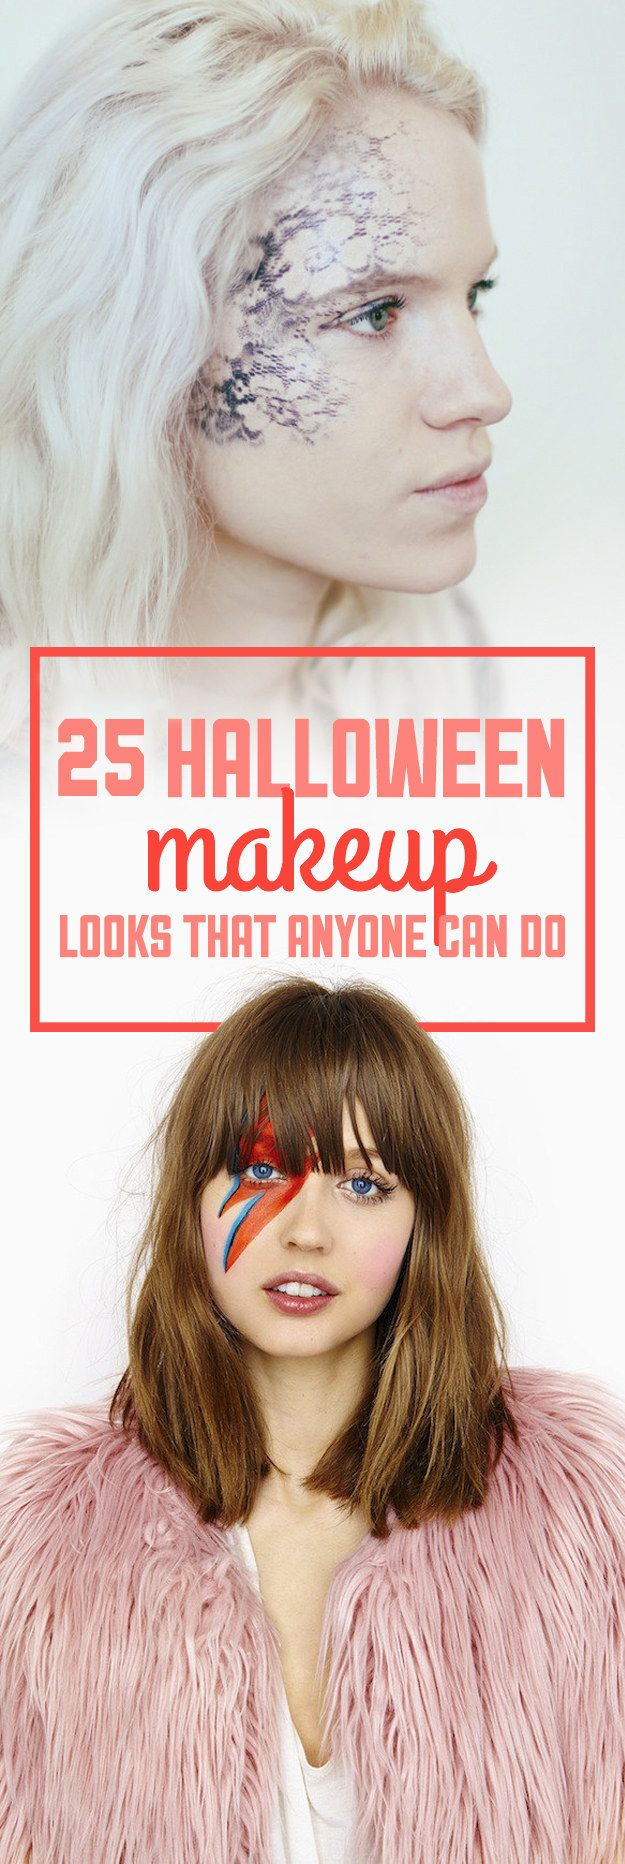 25 Halloween Makeup Looks That Are Actually Easy - when looking throught these pictures, they gave me some idea's on how my character should look and how she should be portrayed. 'Twisted Circus' is a theme that fits the idea of halloween perfectly, so I was influenced by stimuli based around of this time of year - look at the variety of costumes and make-up/masks.